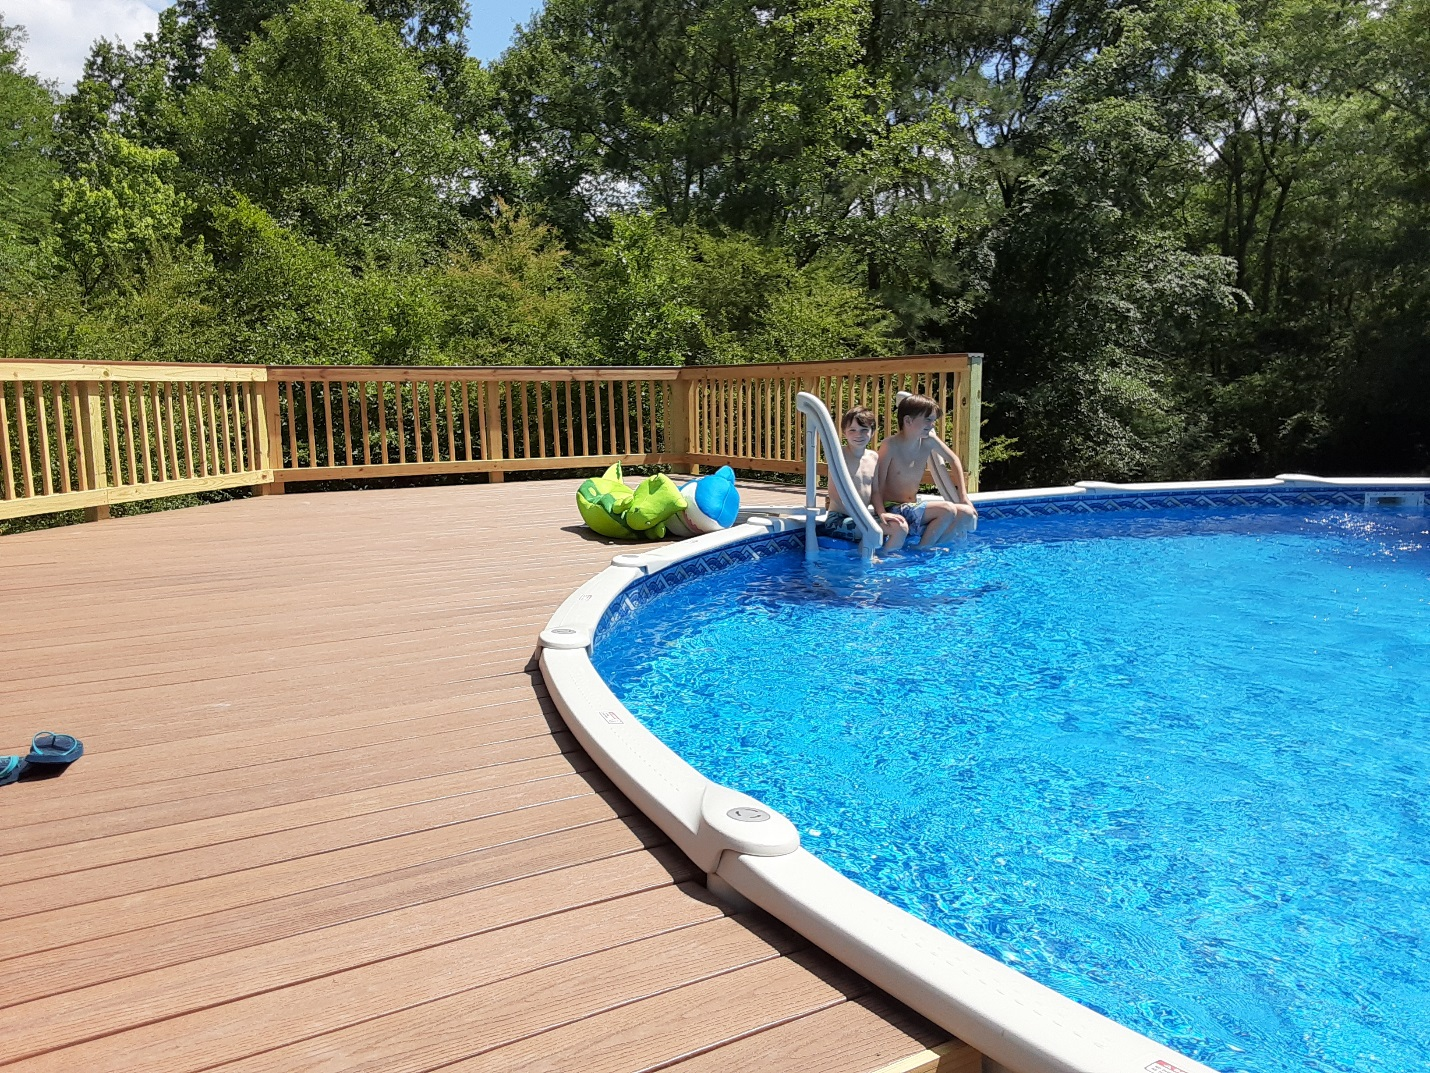 Low-maintenance-composite-decking-means-more-time-for-enjoyment